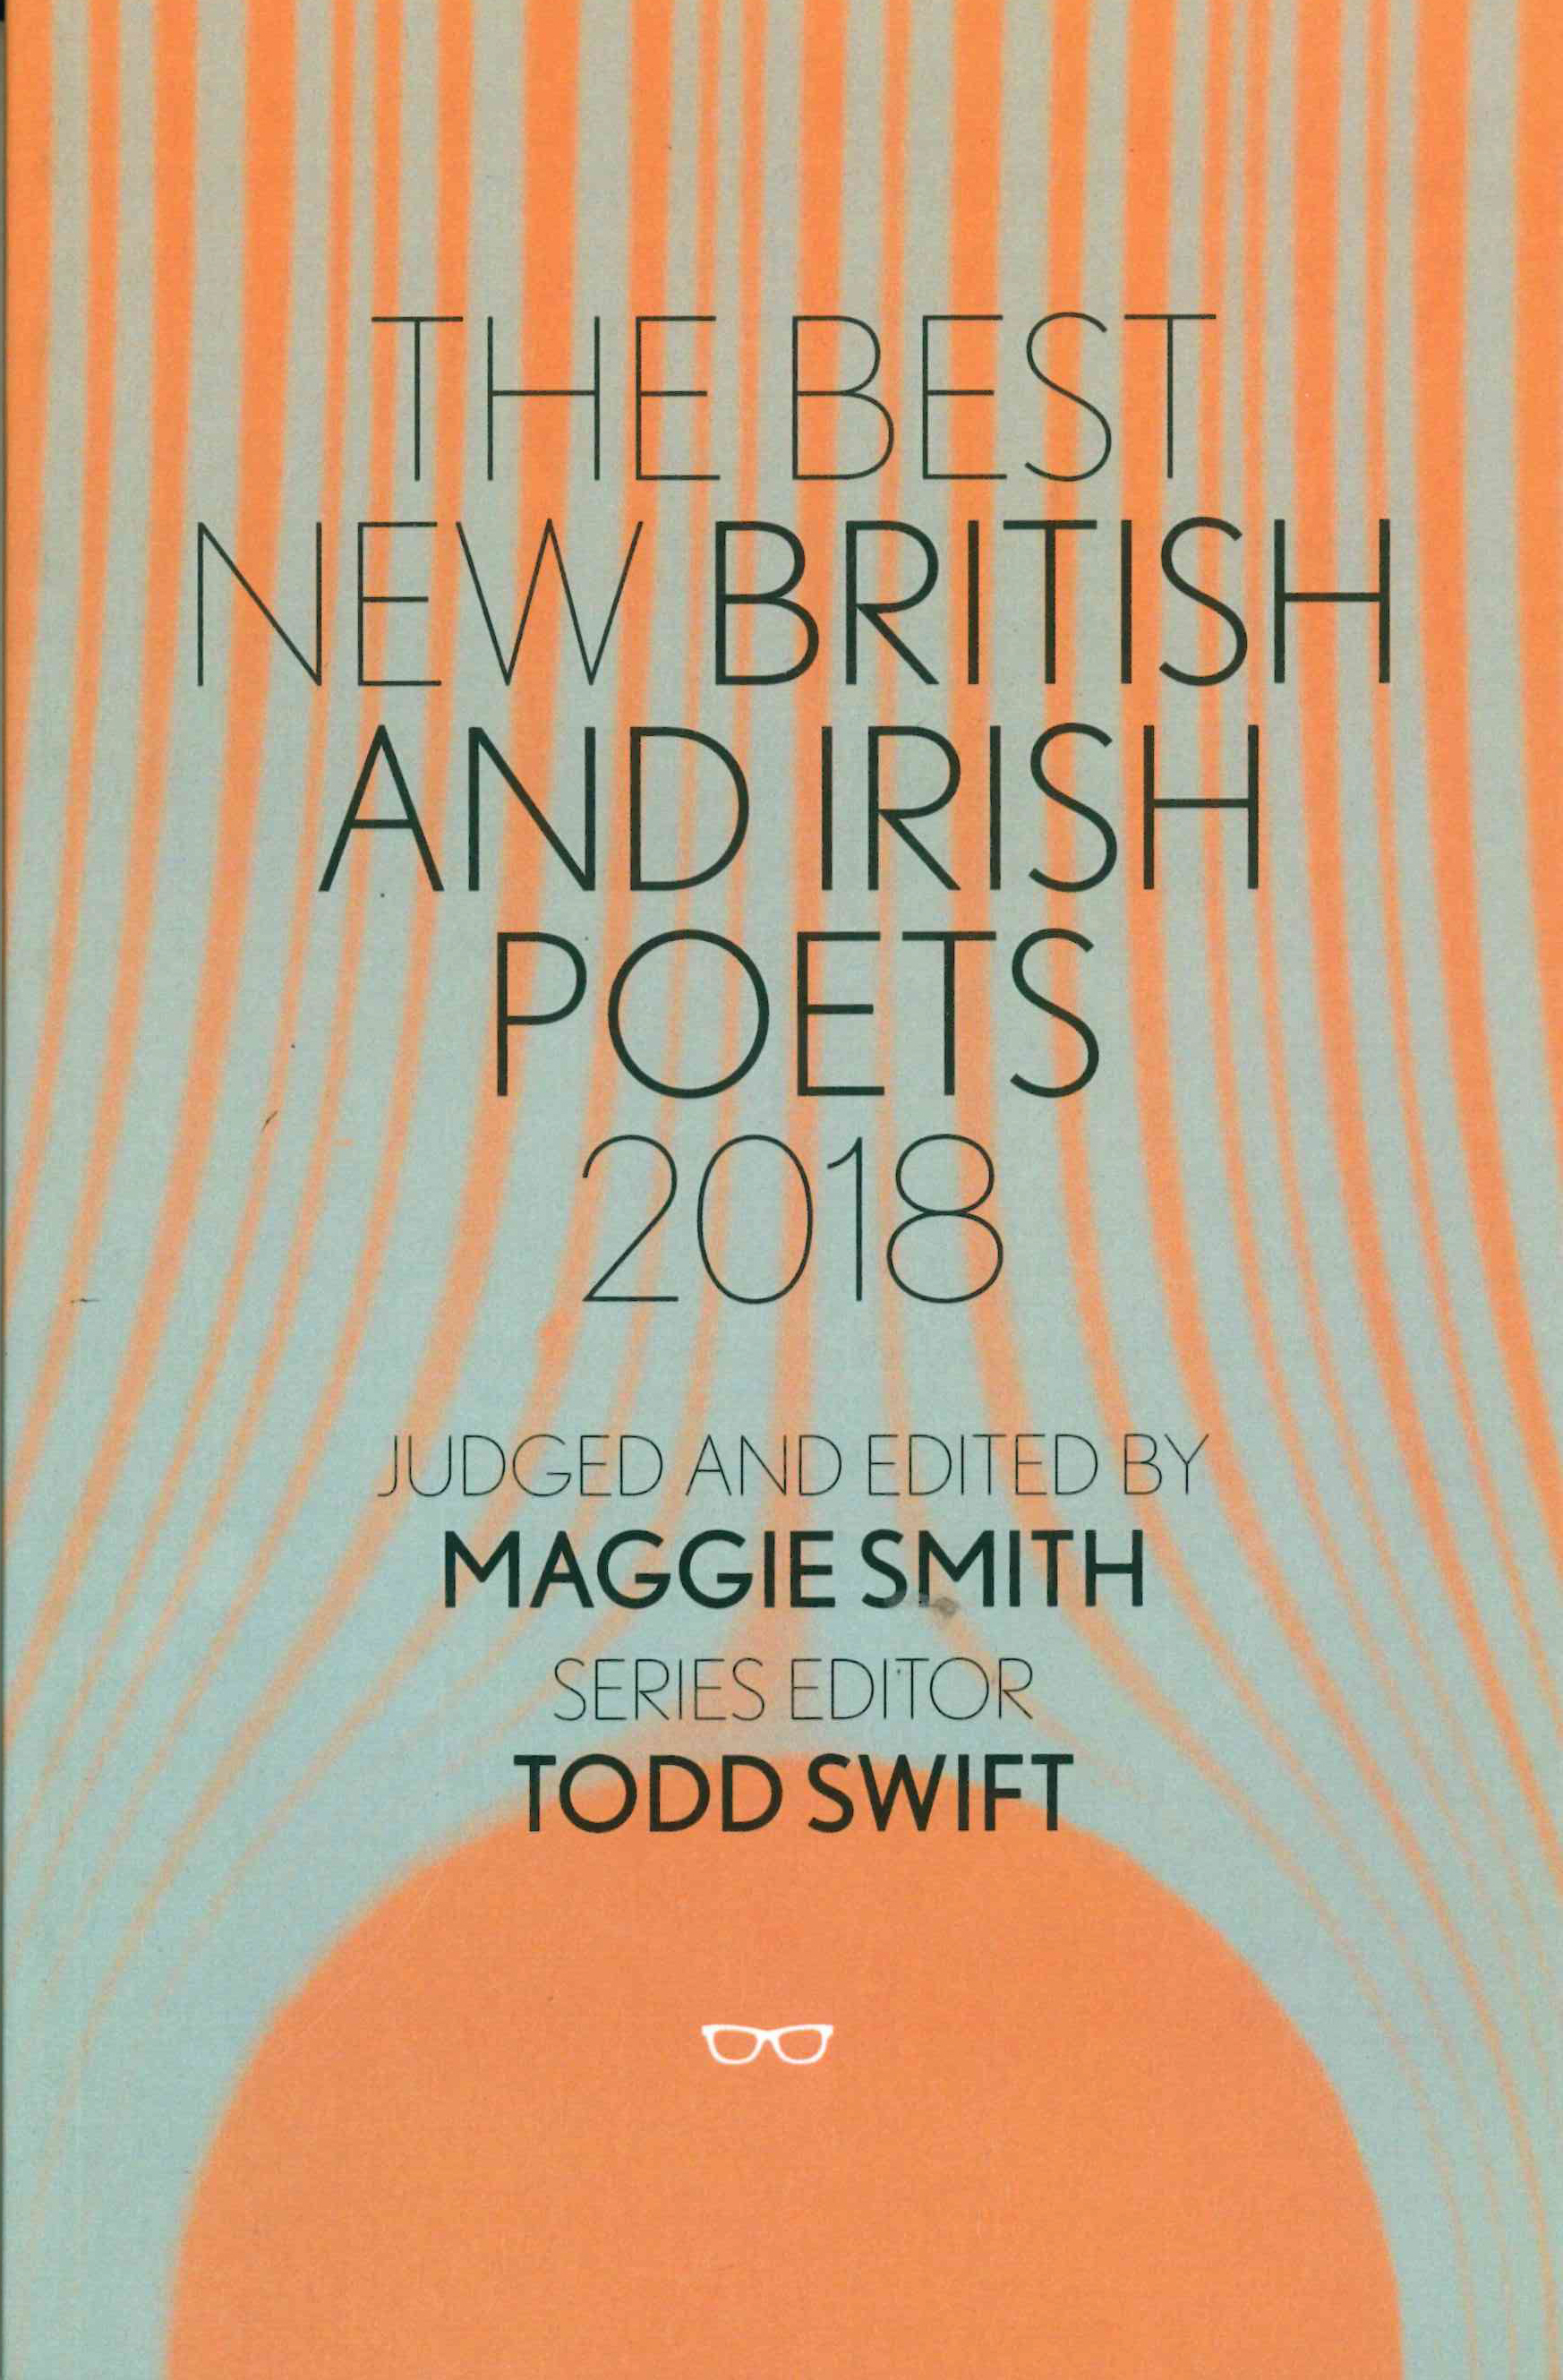 The Best New British & Irish Poets 2018